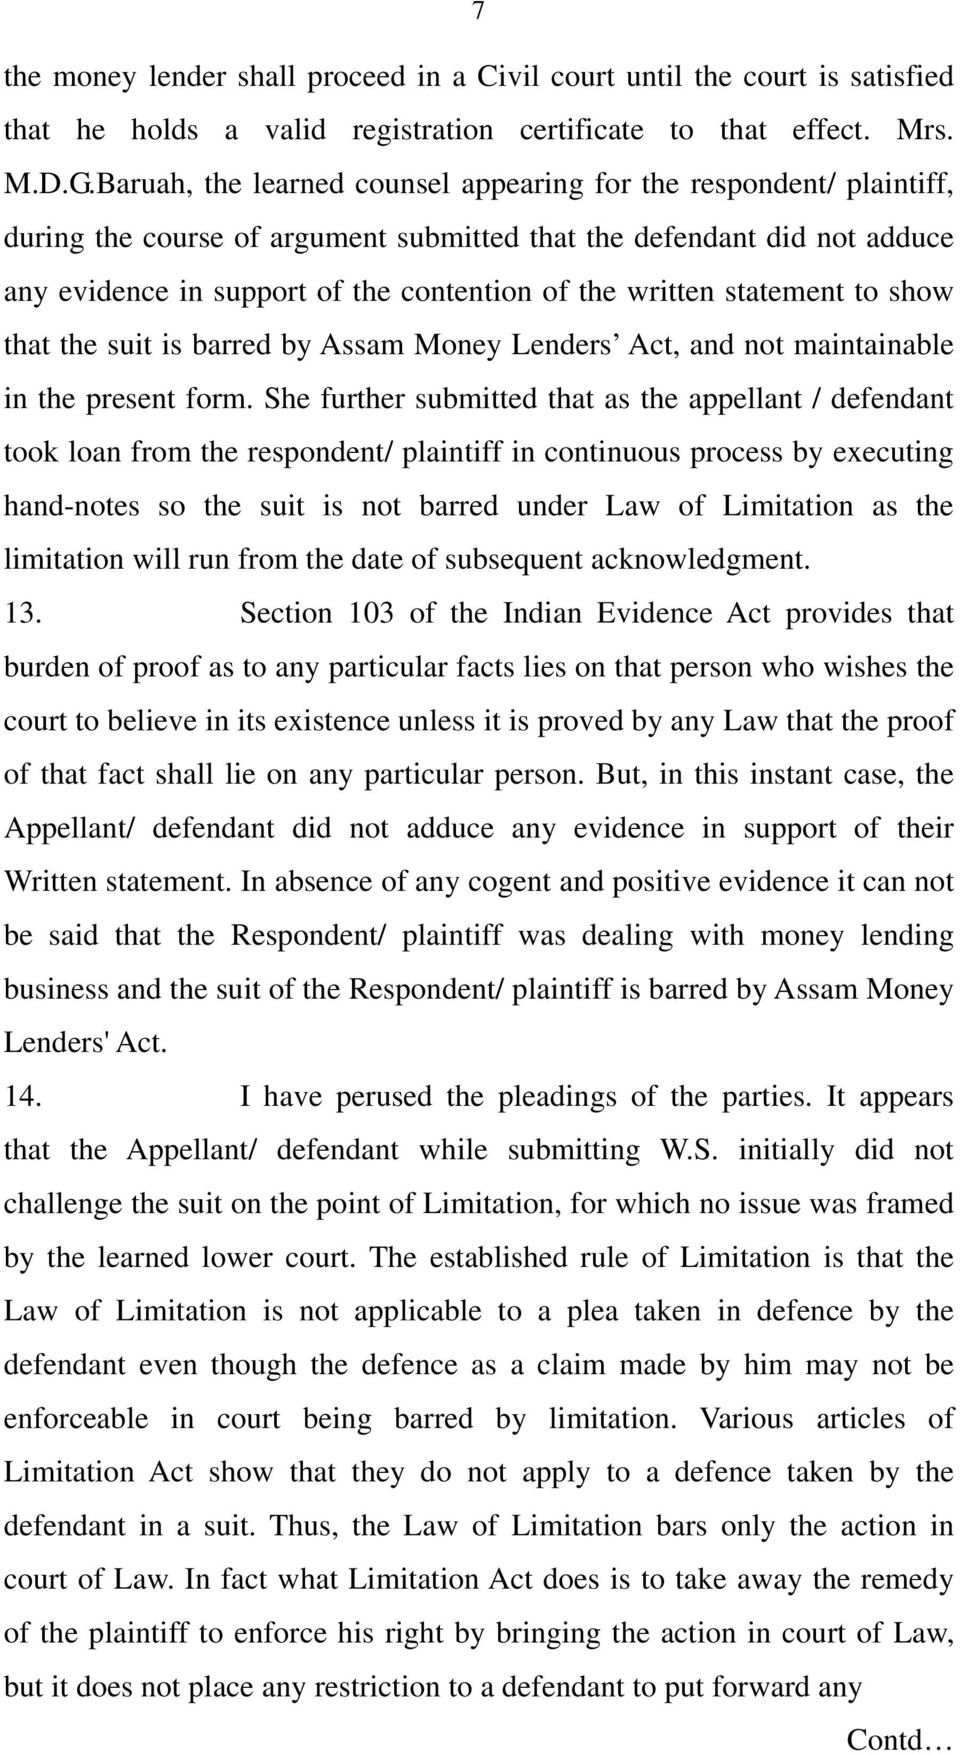 statement to show that the suit is barred by Assam Money Lenders Act, and not maintainable in the present form.